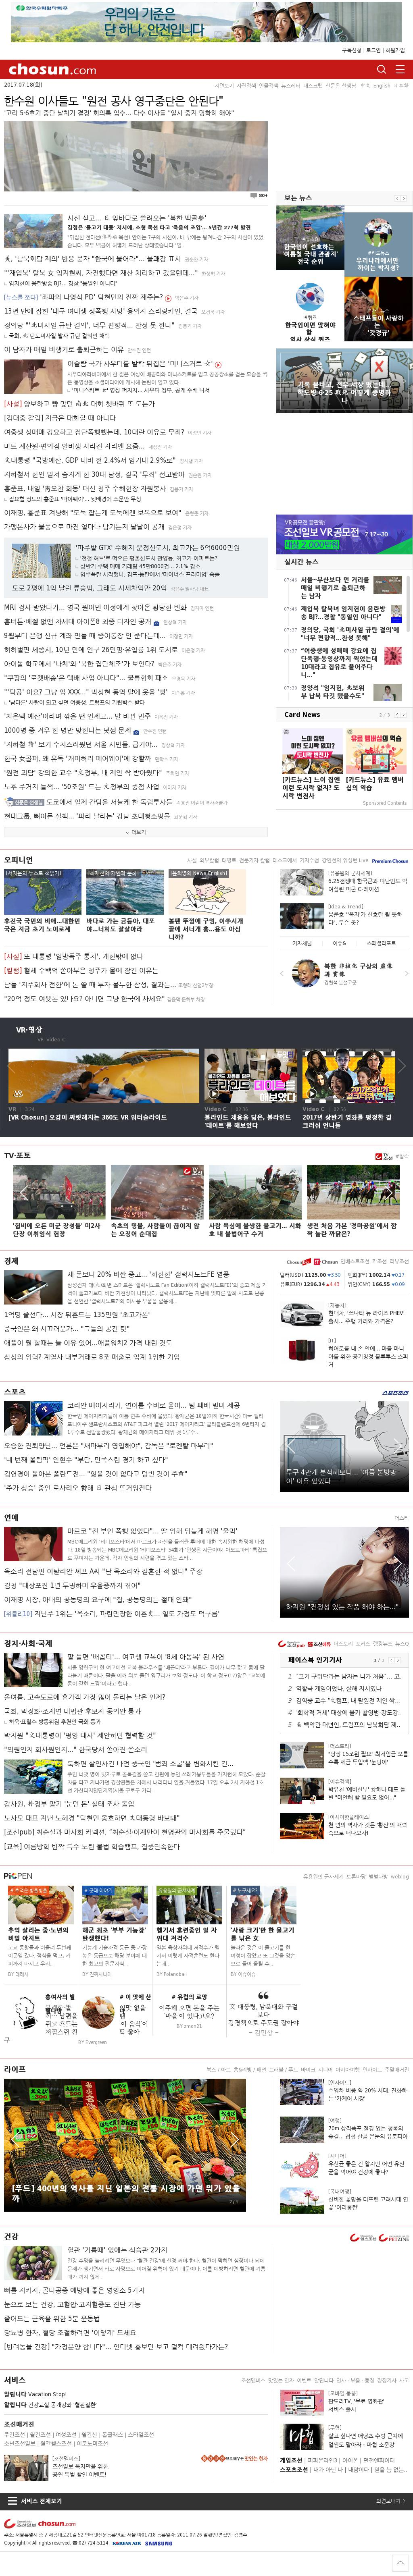 chosun.com at Tuesday July 18, 2017, 8:01 a.m. UTC